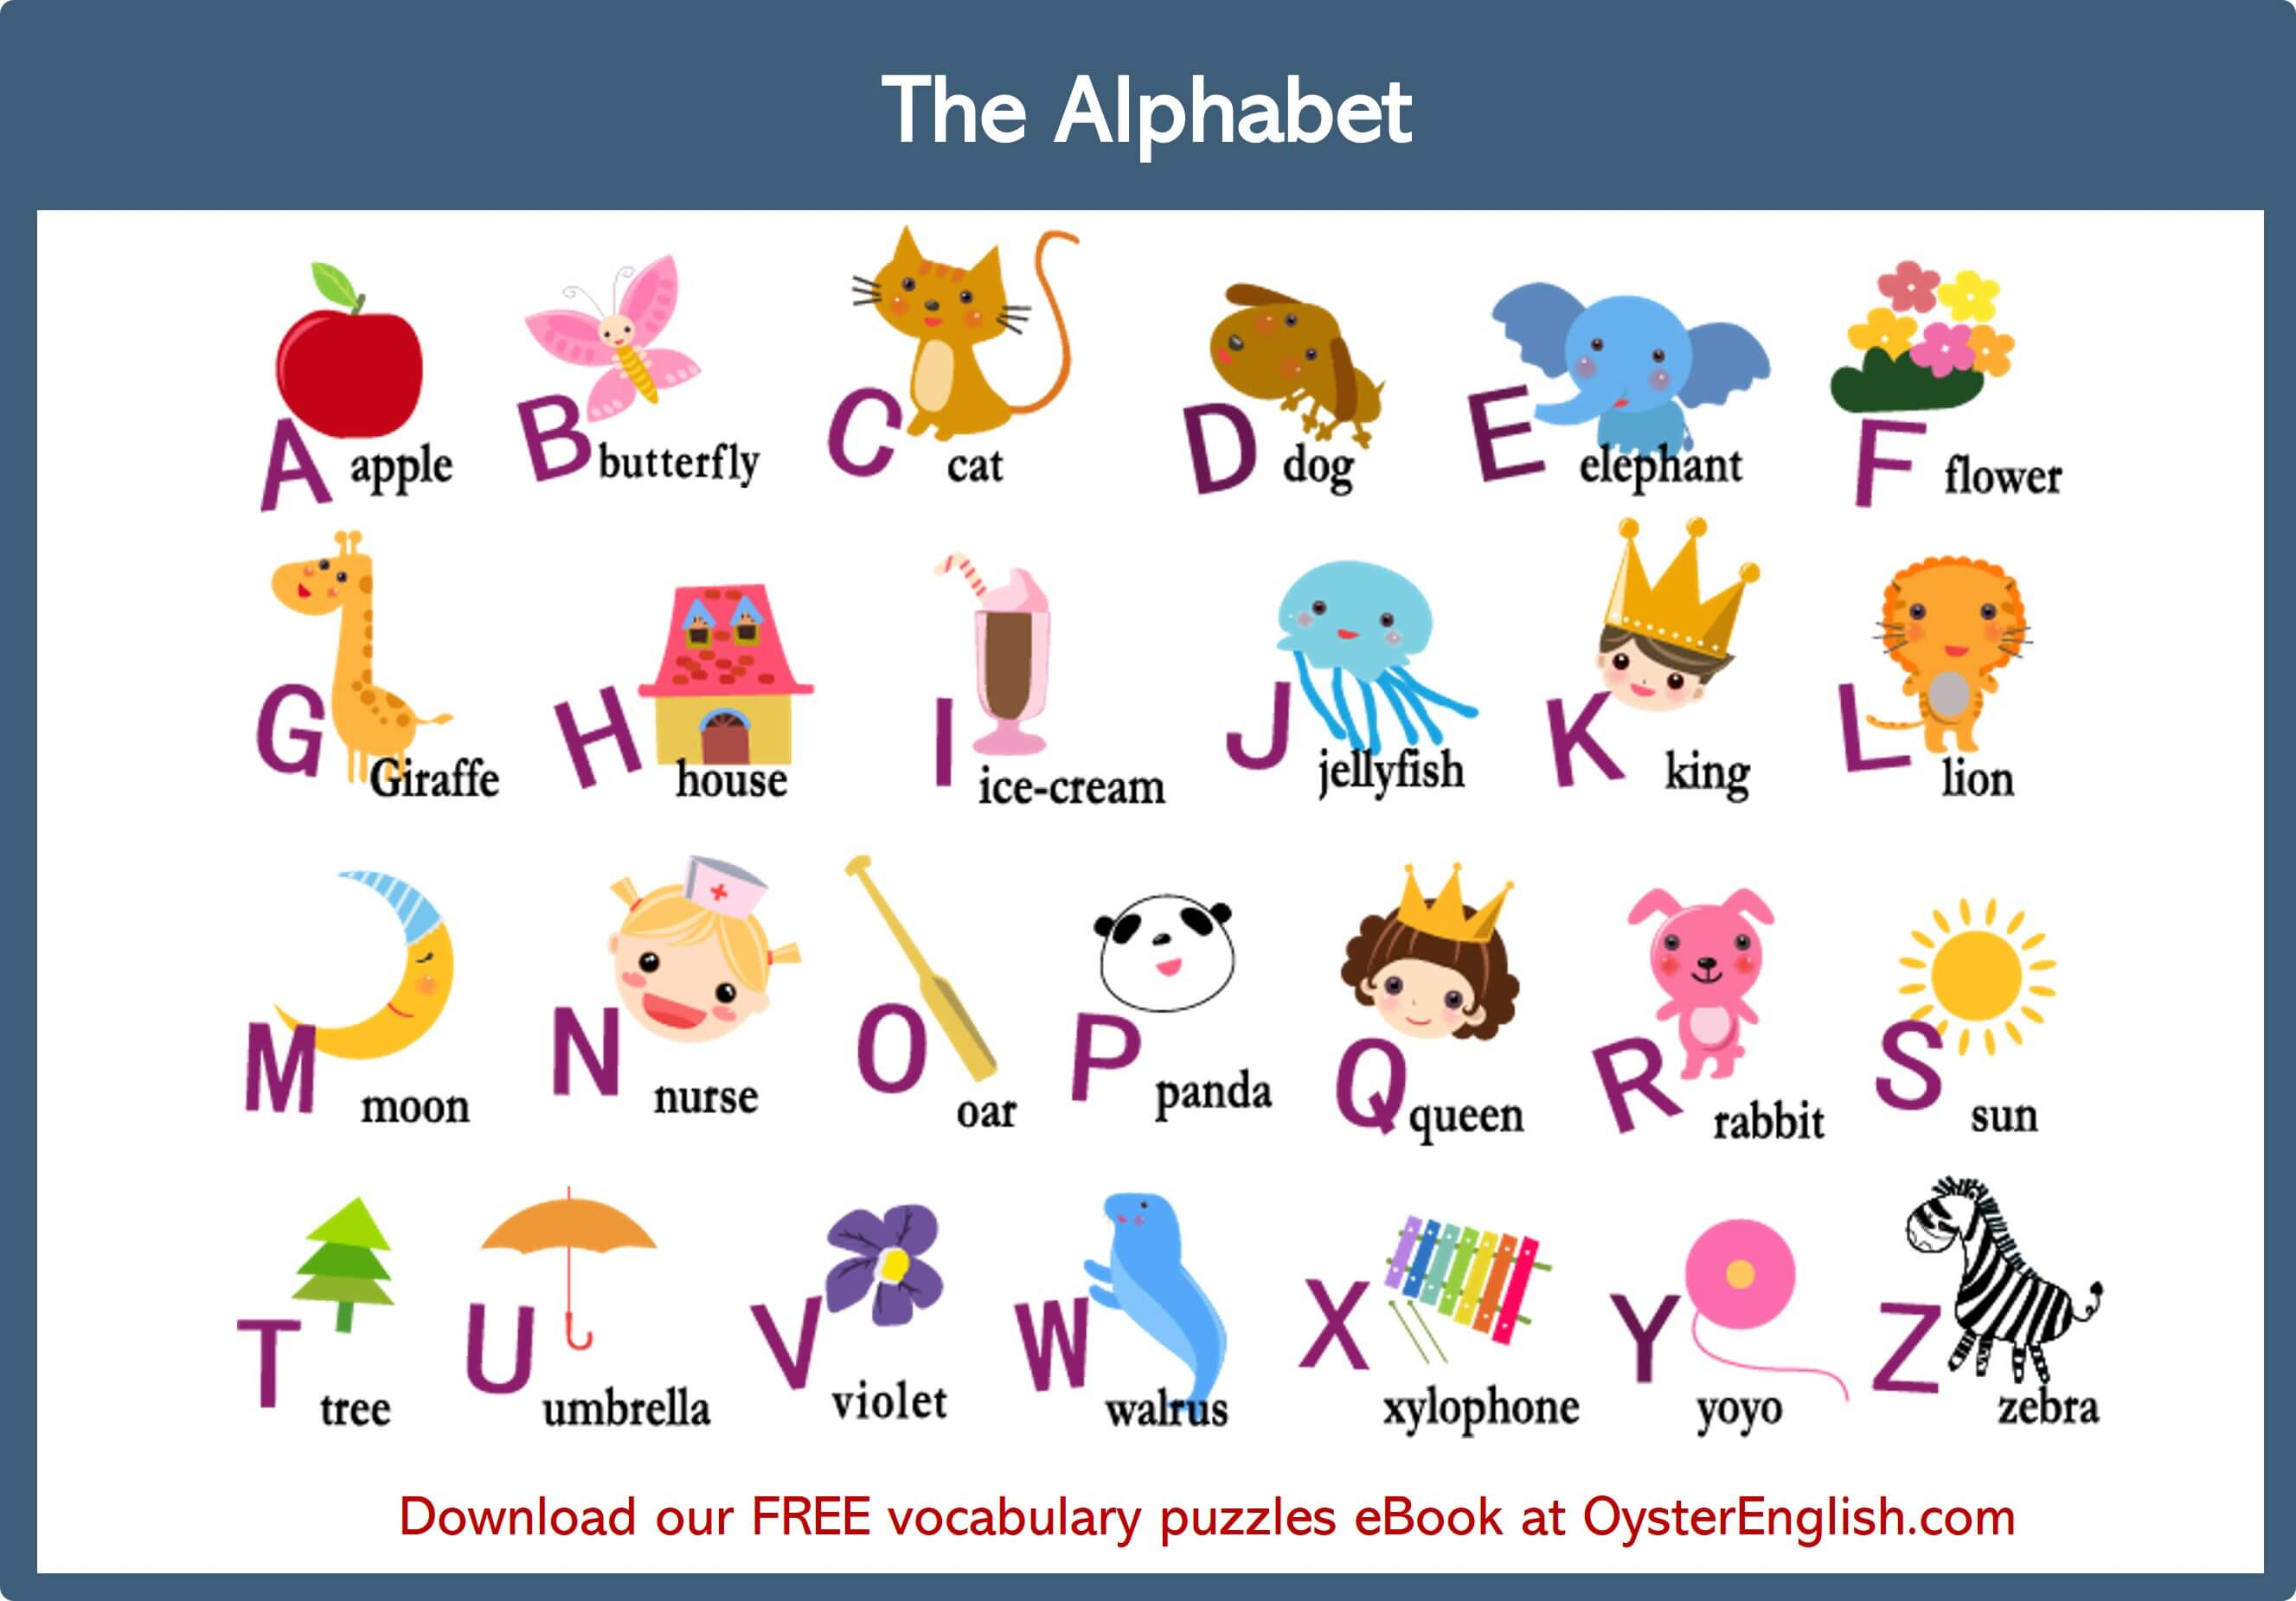 A visual of the English alphabet with pictures representing the letters of the alphabet